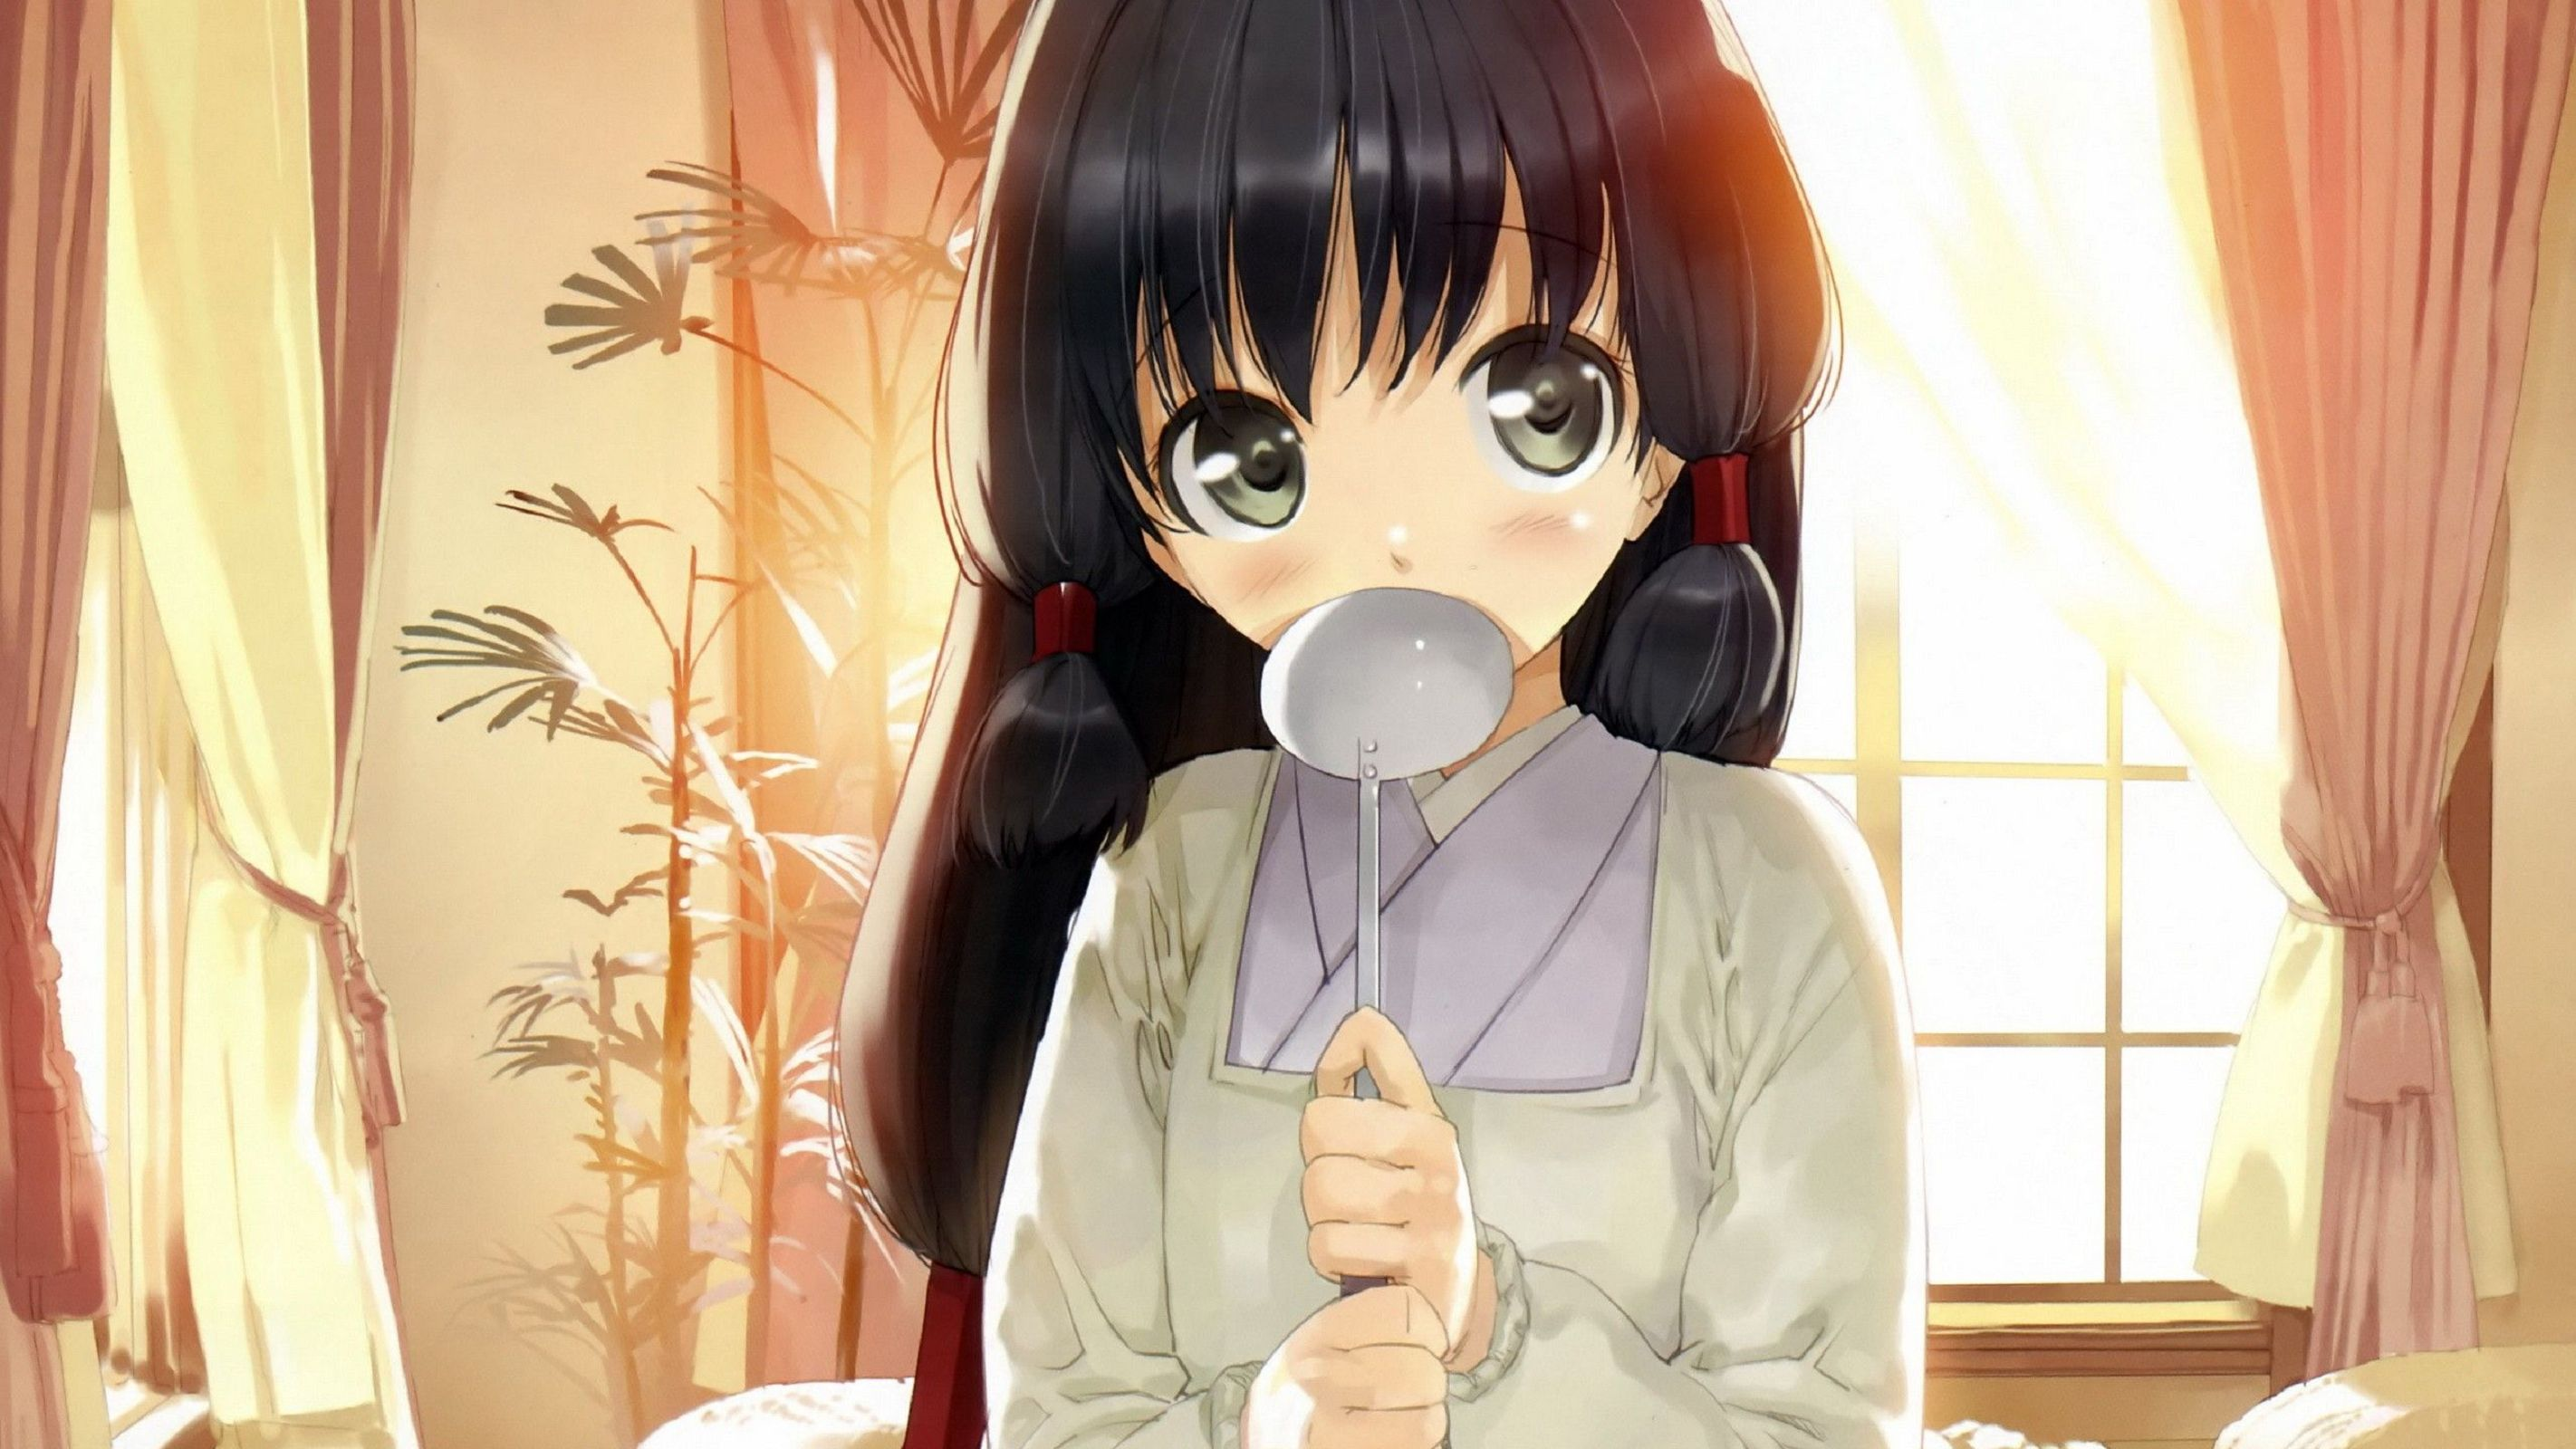 Anime, Girl, Spoon - Fonds d'écran